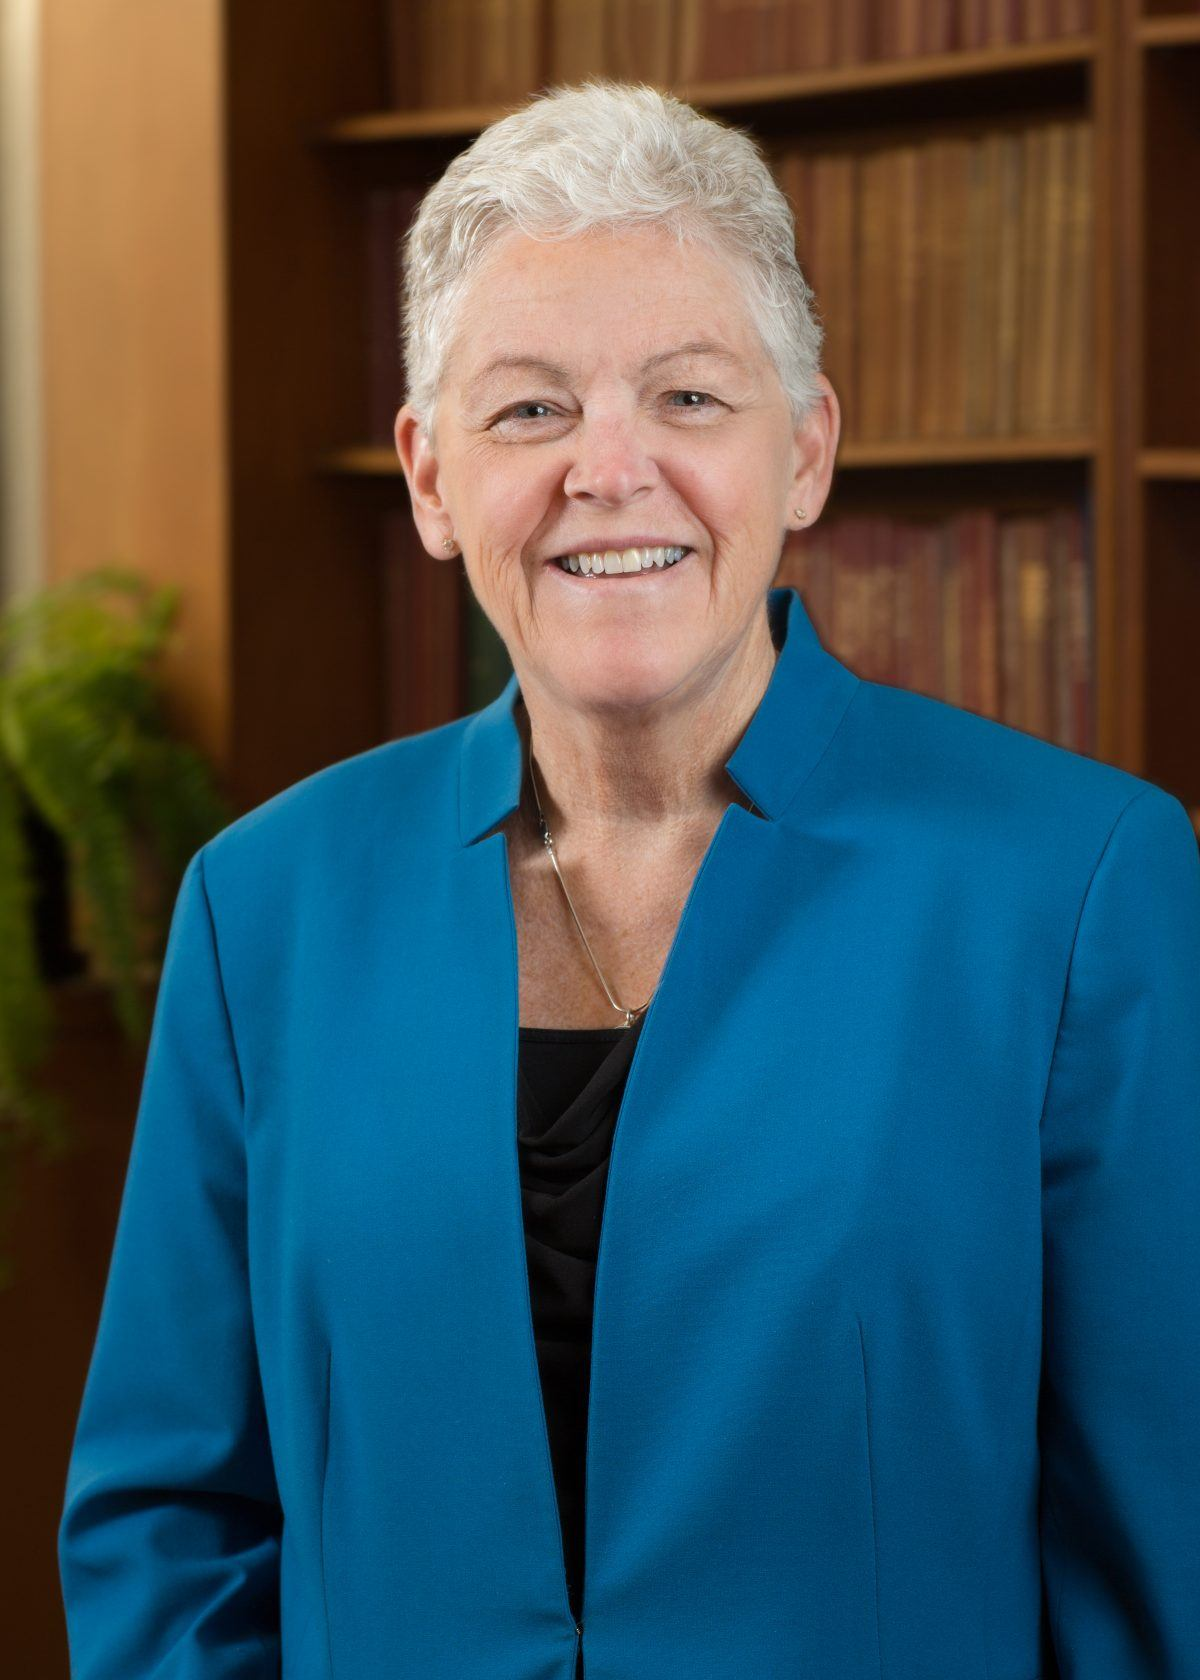 Gina McCarthy, former administrator of the Environmental Protection Agency, Menschel Senior Fellow at Harvard T.H. Chan School of Public Health